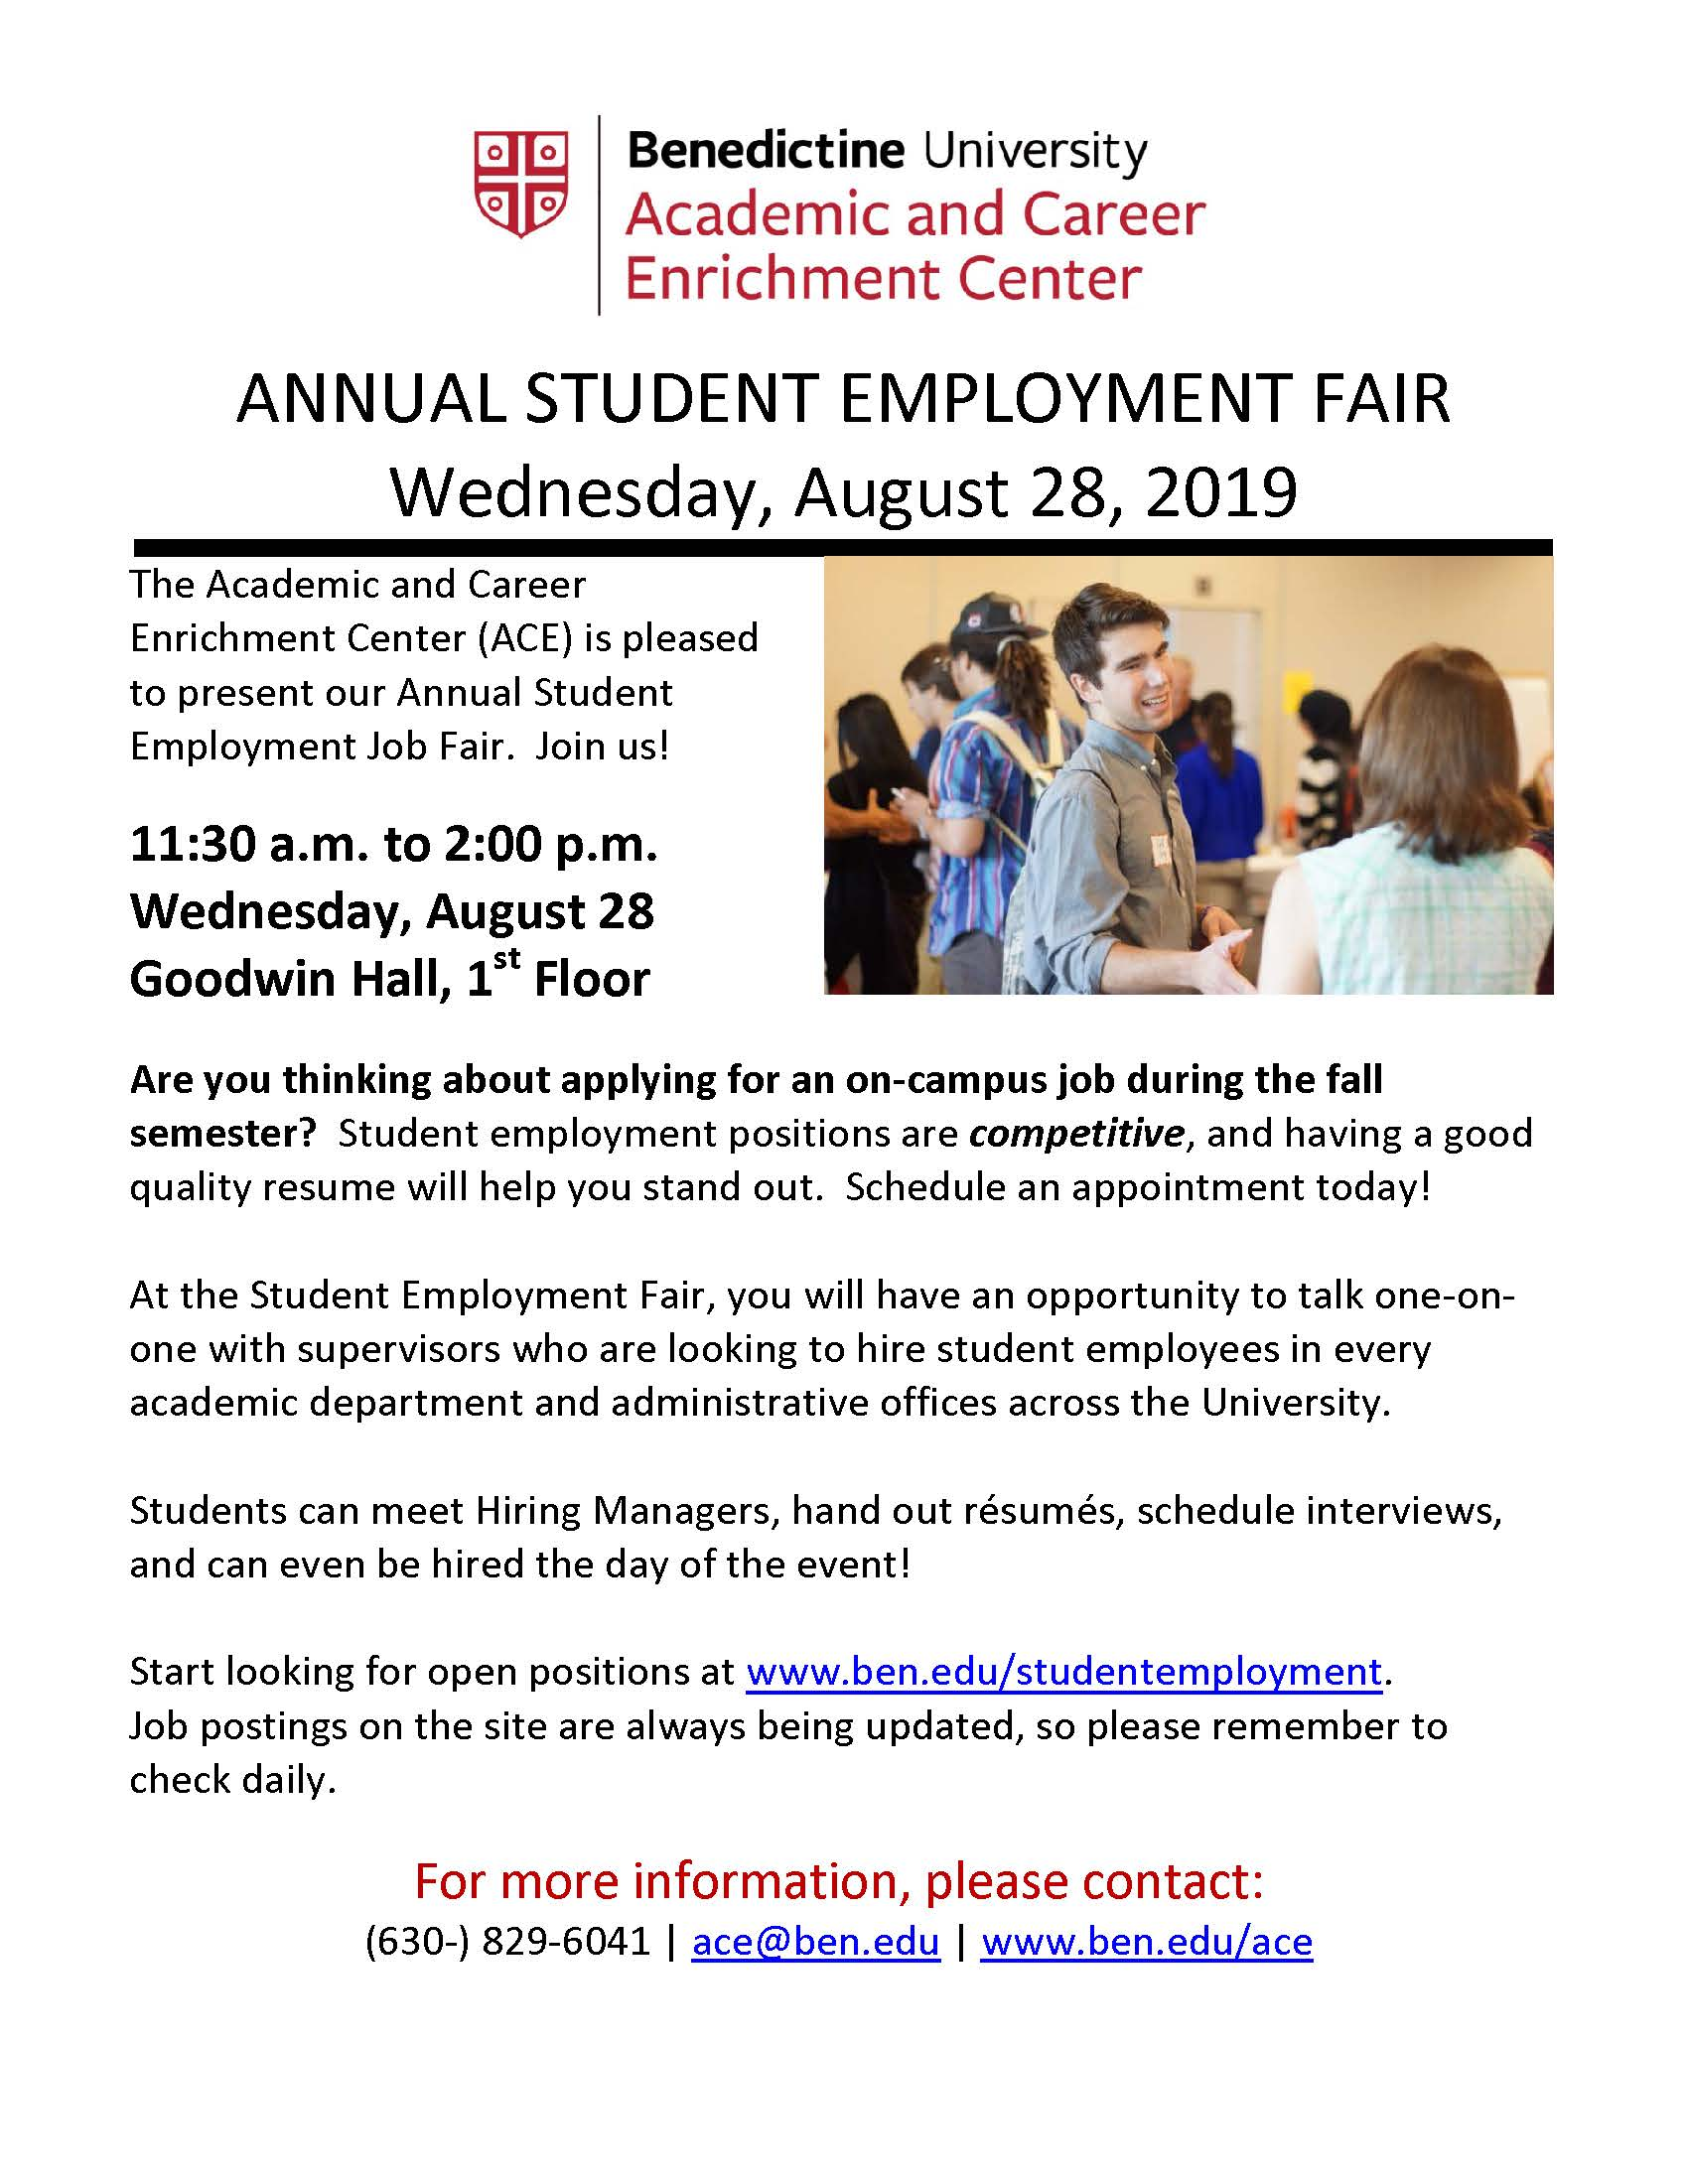 STUDENT - ACE Annual Student Employment Fair 2019